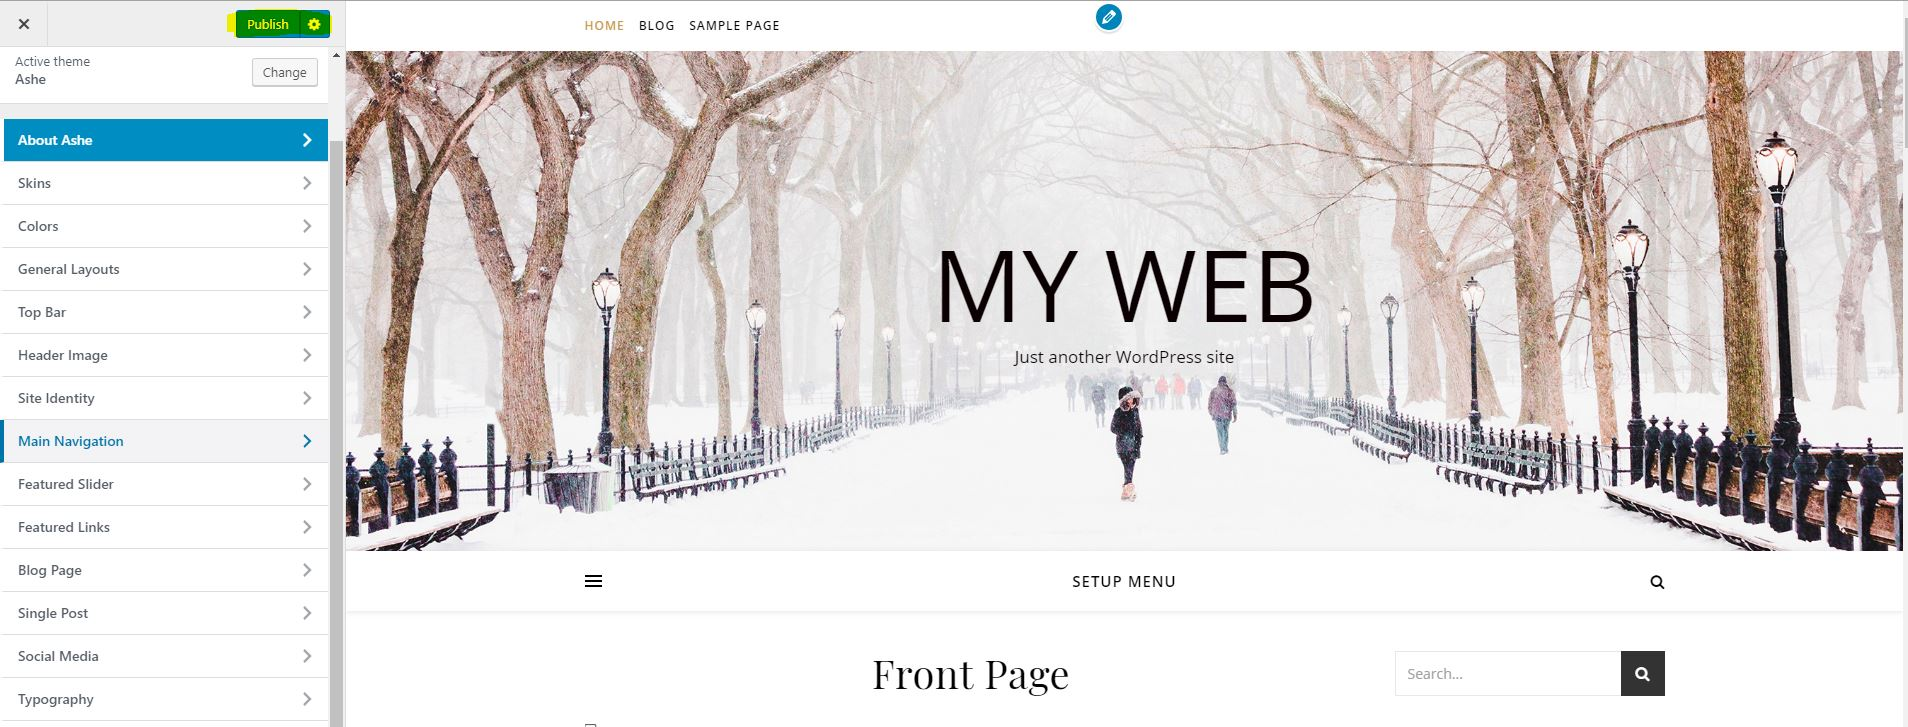 Publish WordPress Theme